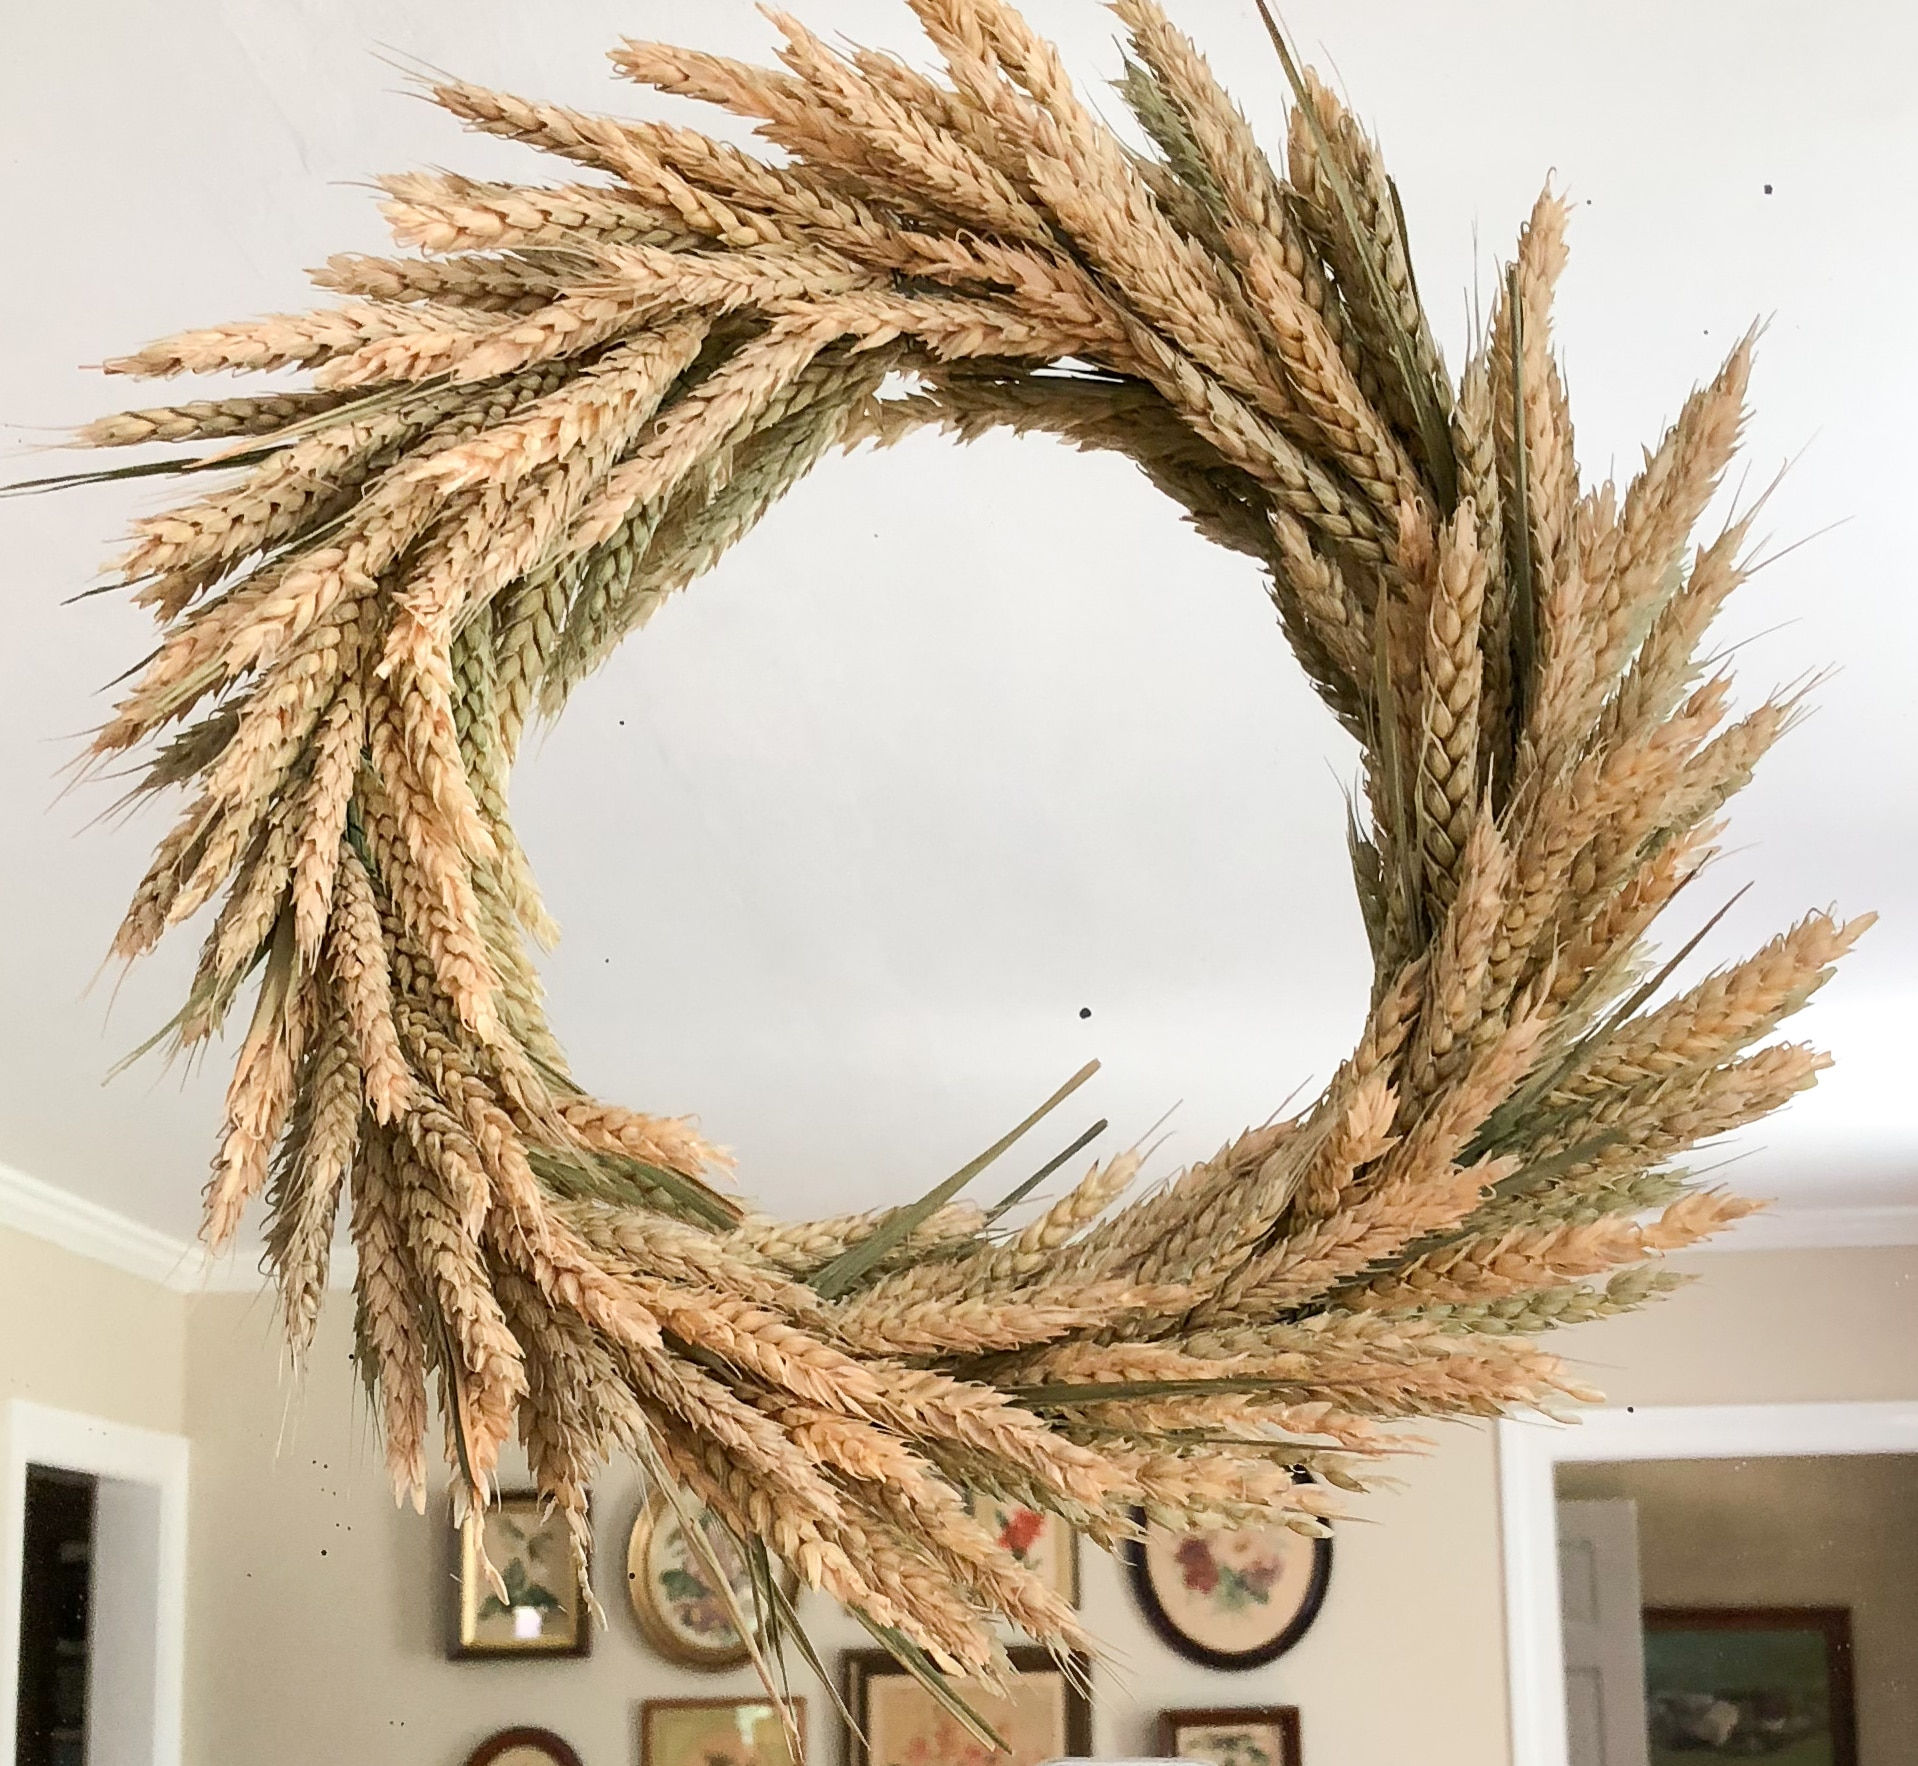 Learn how to make a wheat wreath for fall decor.